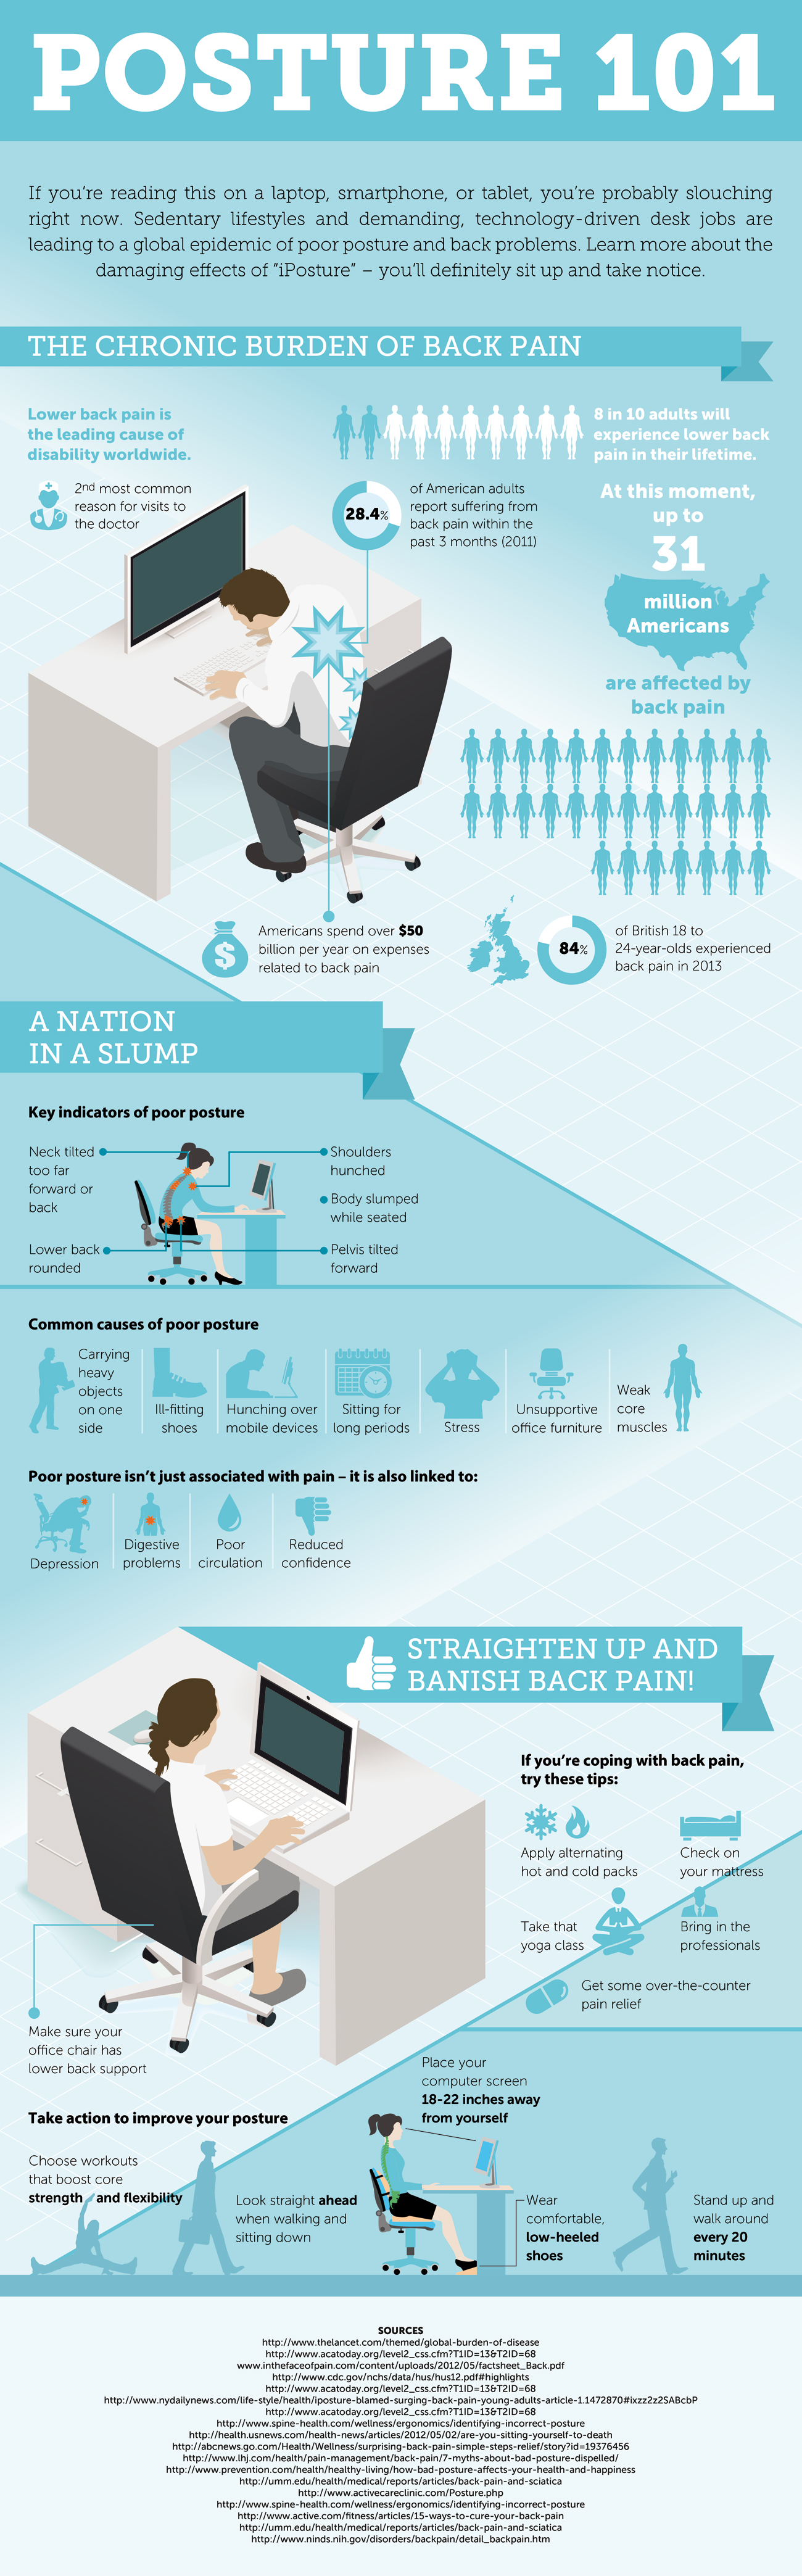 Simple Ways To Improve Your Posture Right Now Infographic